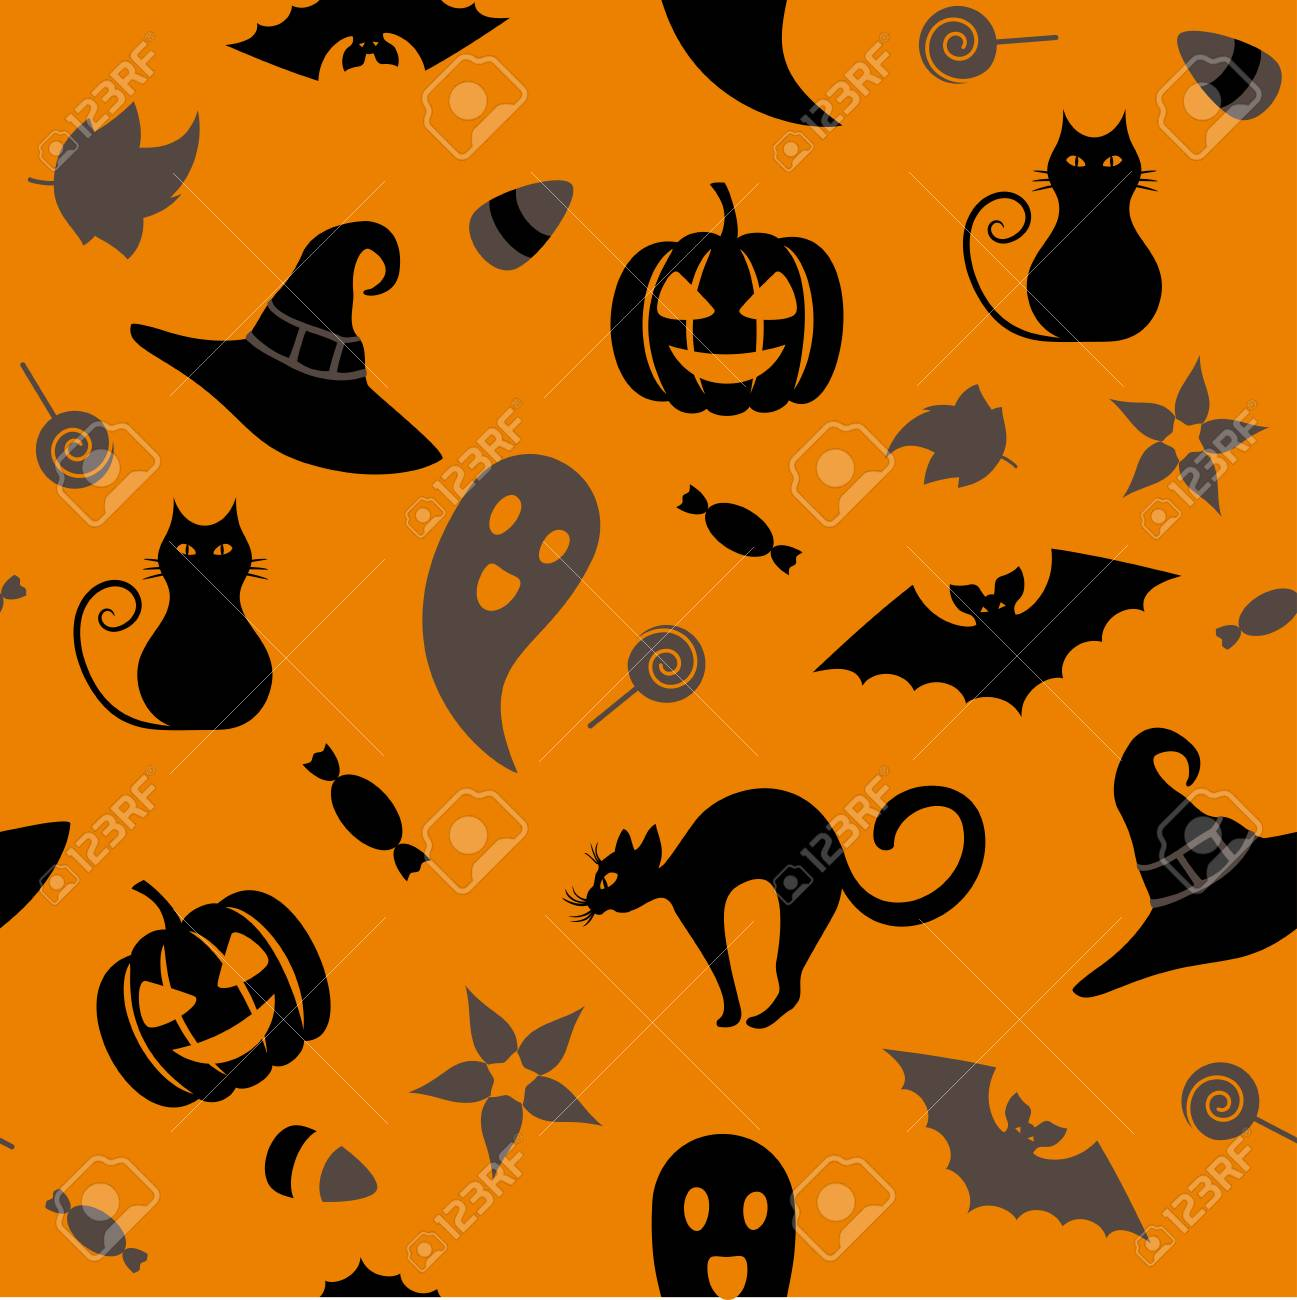 Seamless Halloween Pattern With Traditional Symbols Cat Hat Bat Ghost Leaves